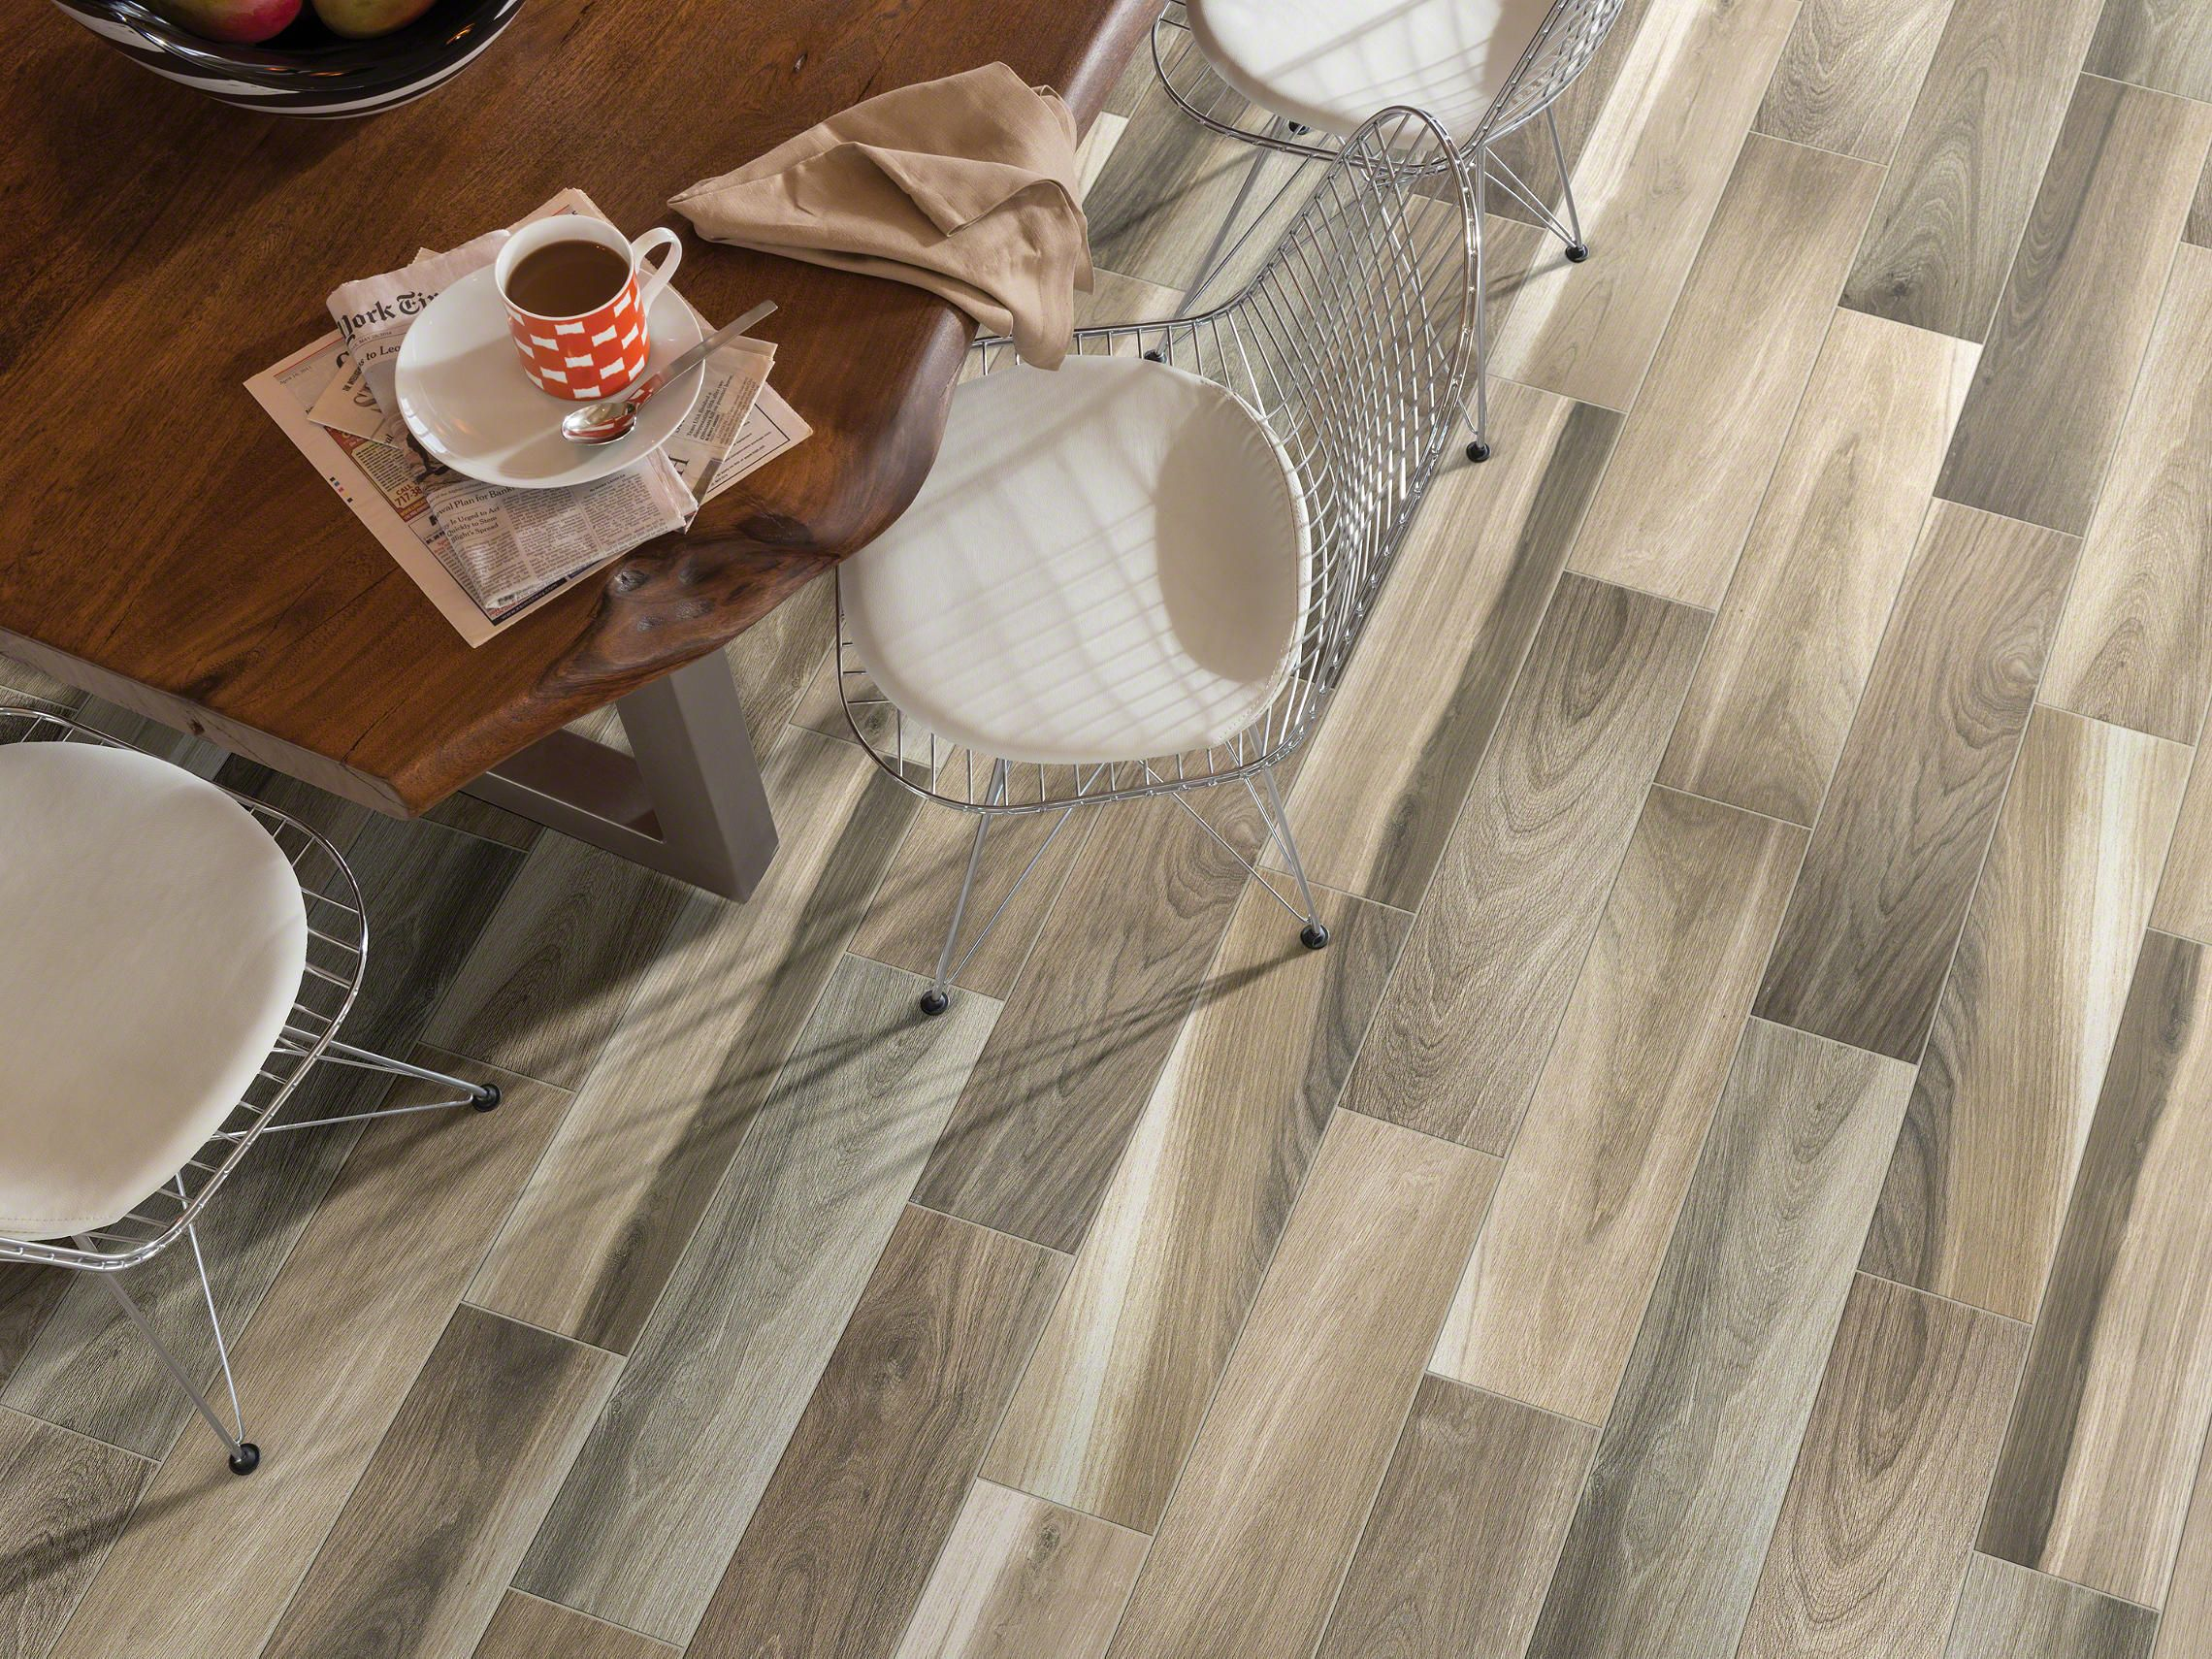 Independence 6x24 Cs34p Blend Tile And Stone Wall And Flooring Tiles Flooring Wood Look Tile Tile Floor